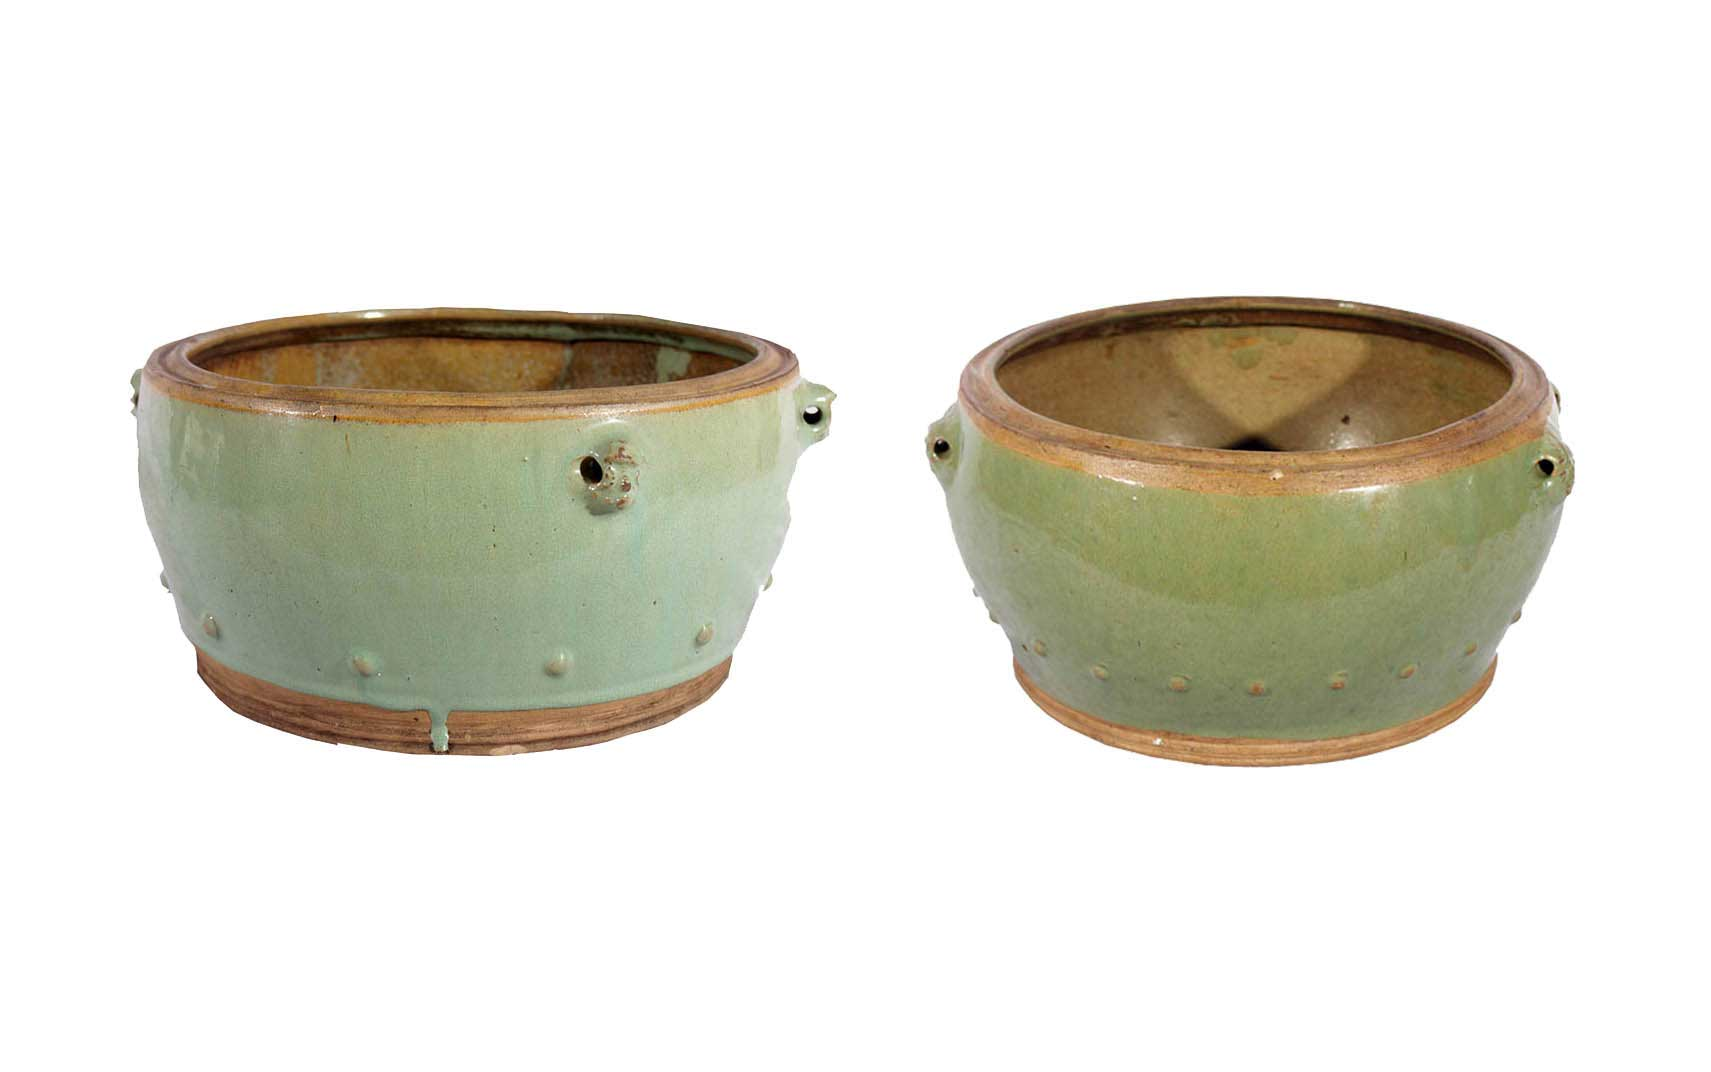 A set of two green-glazed bowls